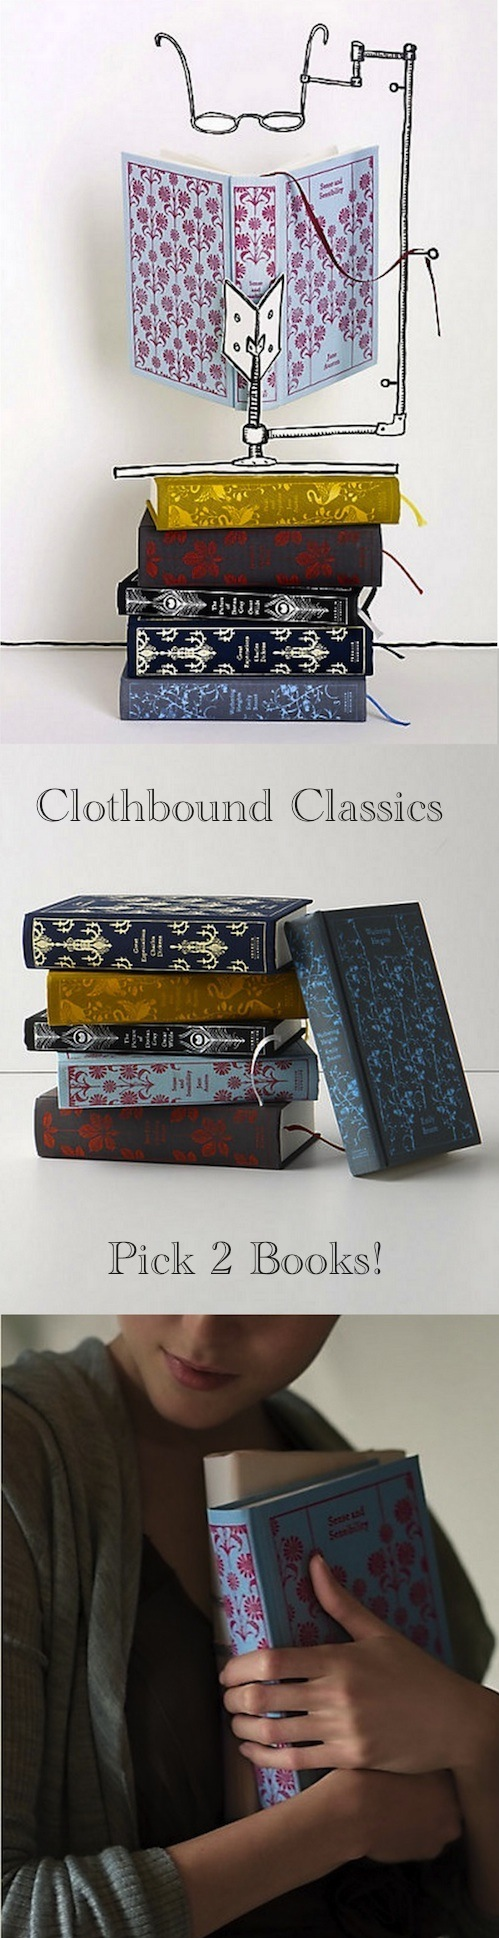 cloth-bound